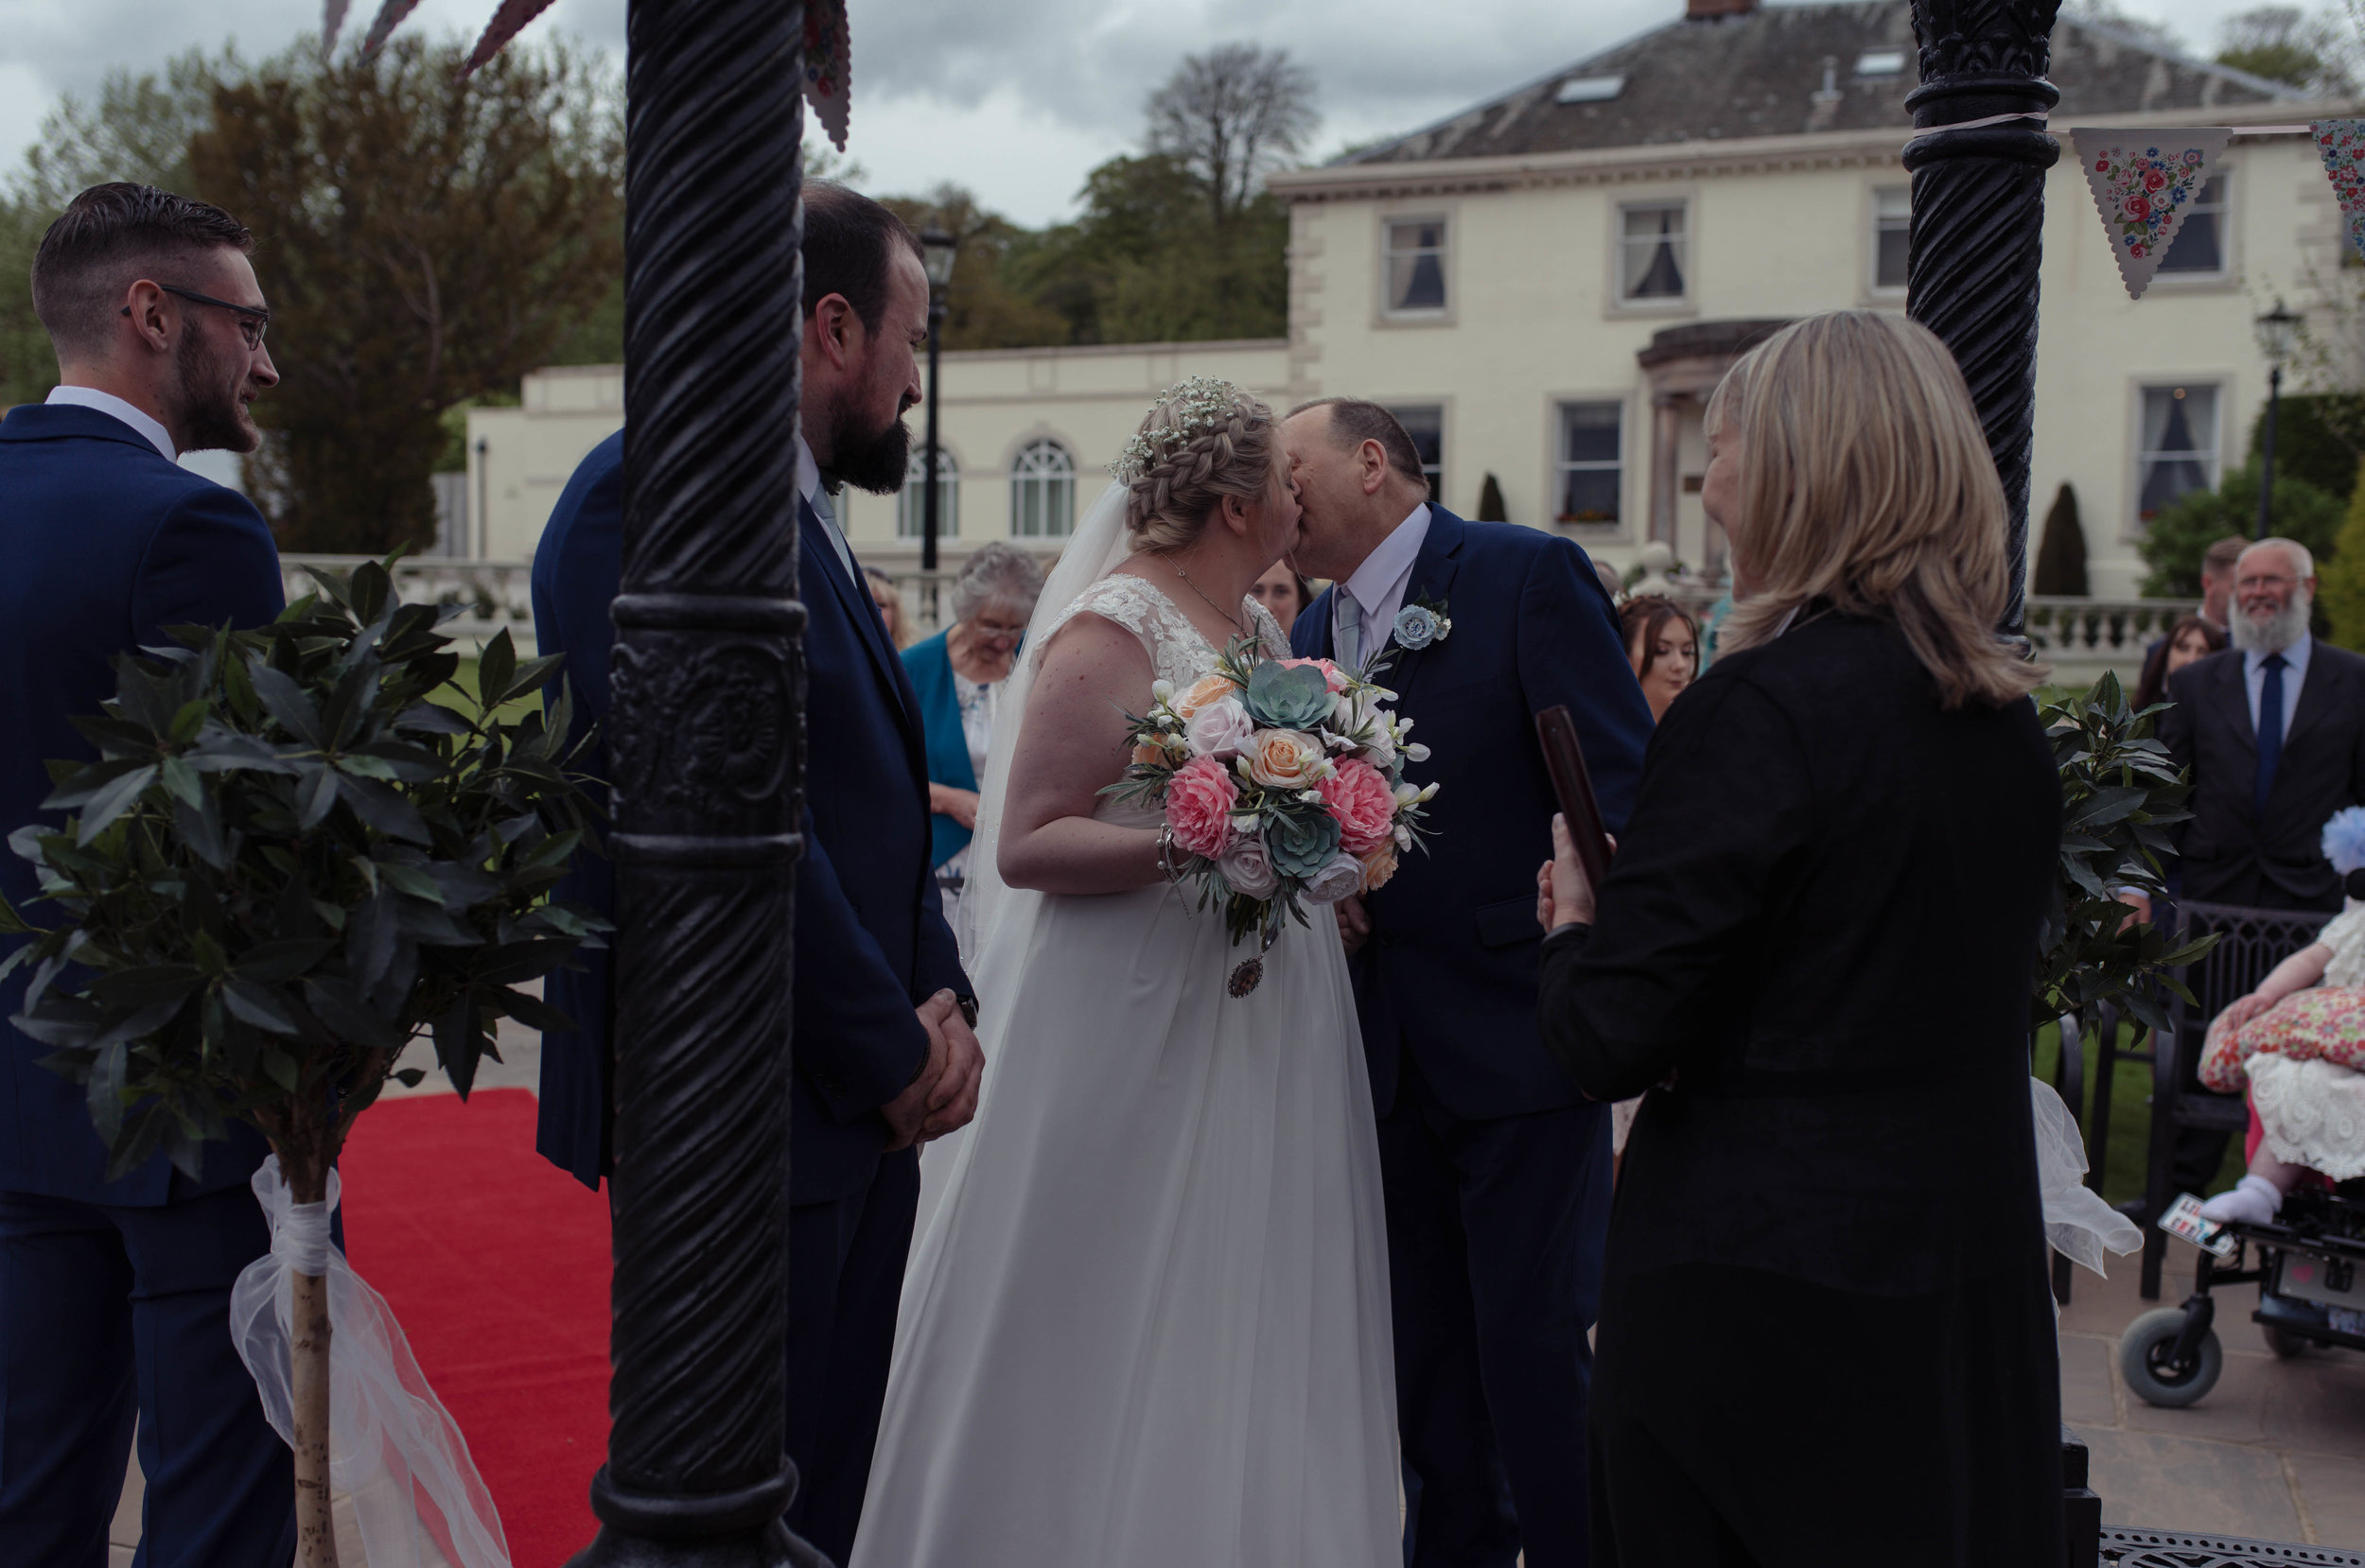 The bride and her father share a kiss as she gives him away